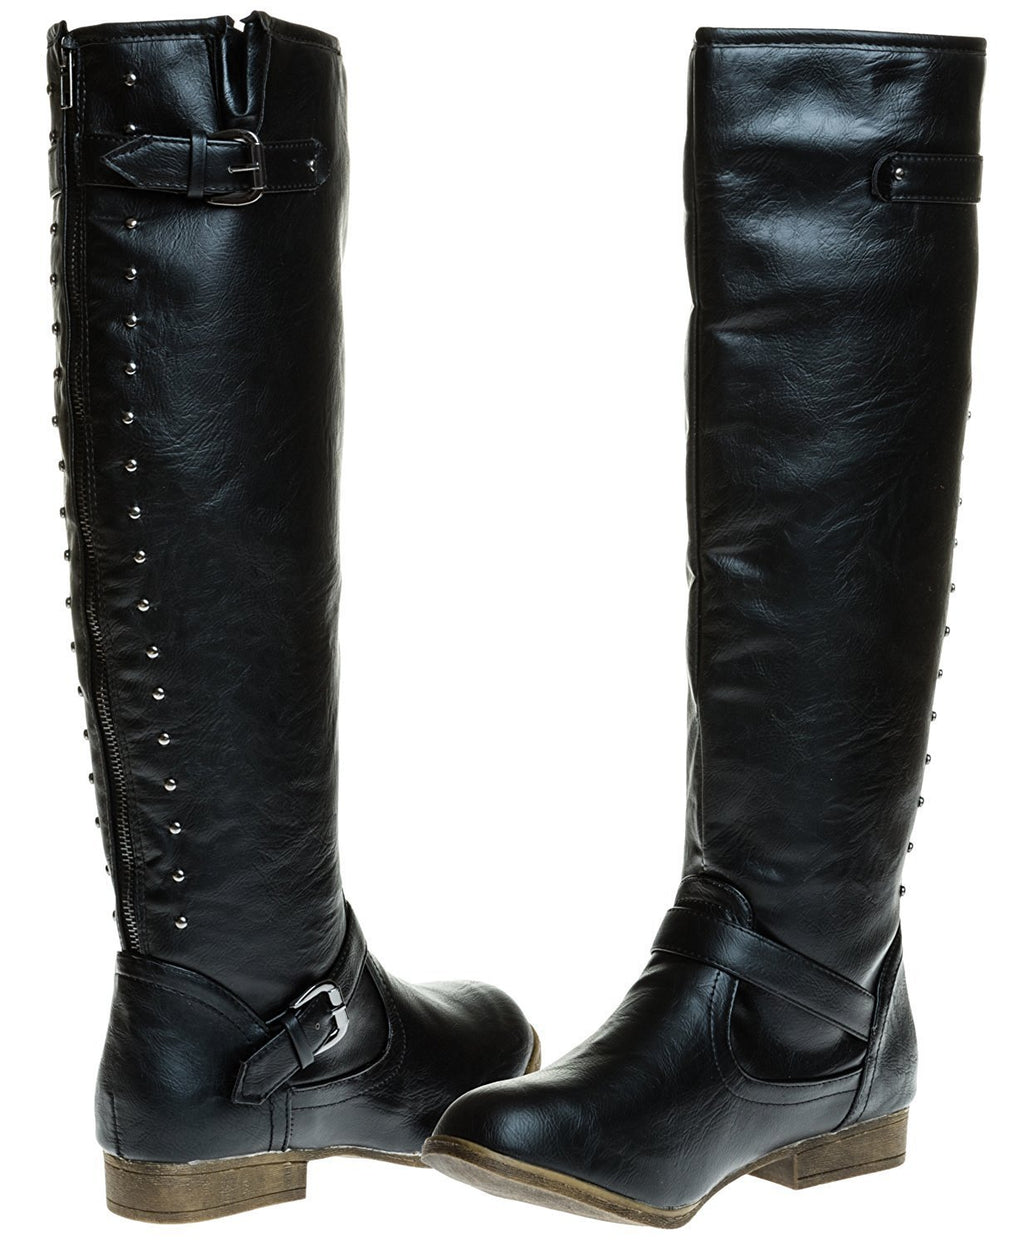 Sara Z Ladies Riding Boot with Back Studs (Black), Size 8